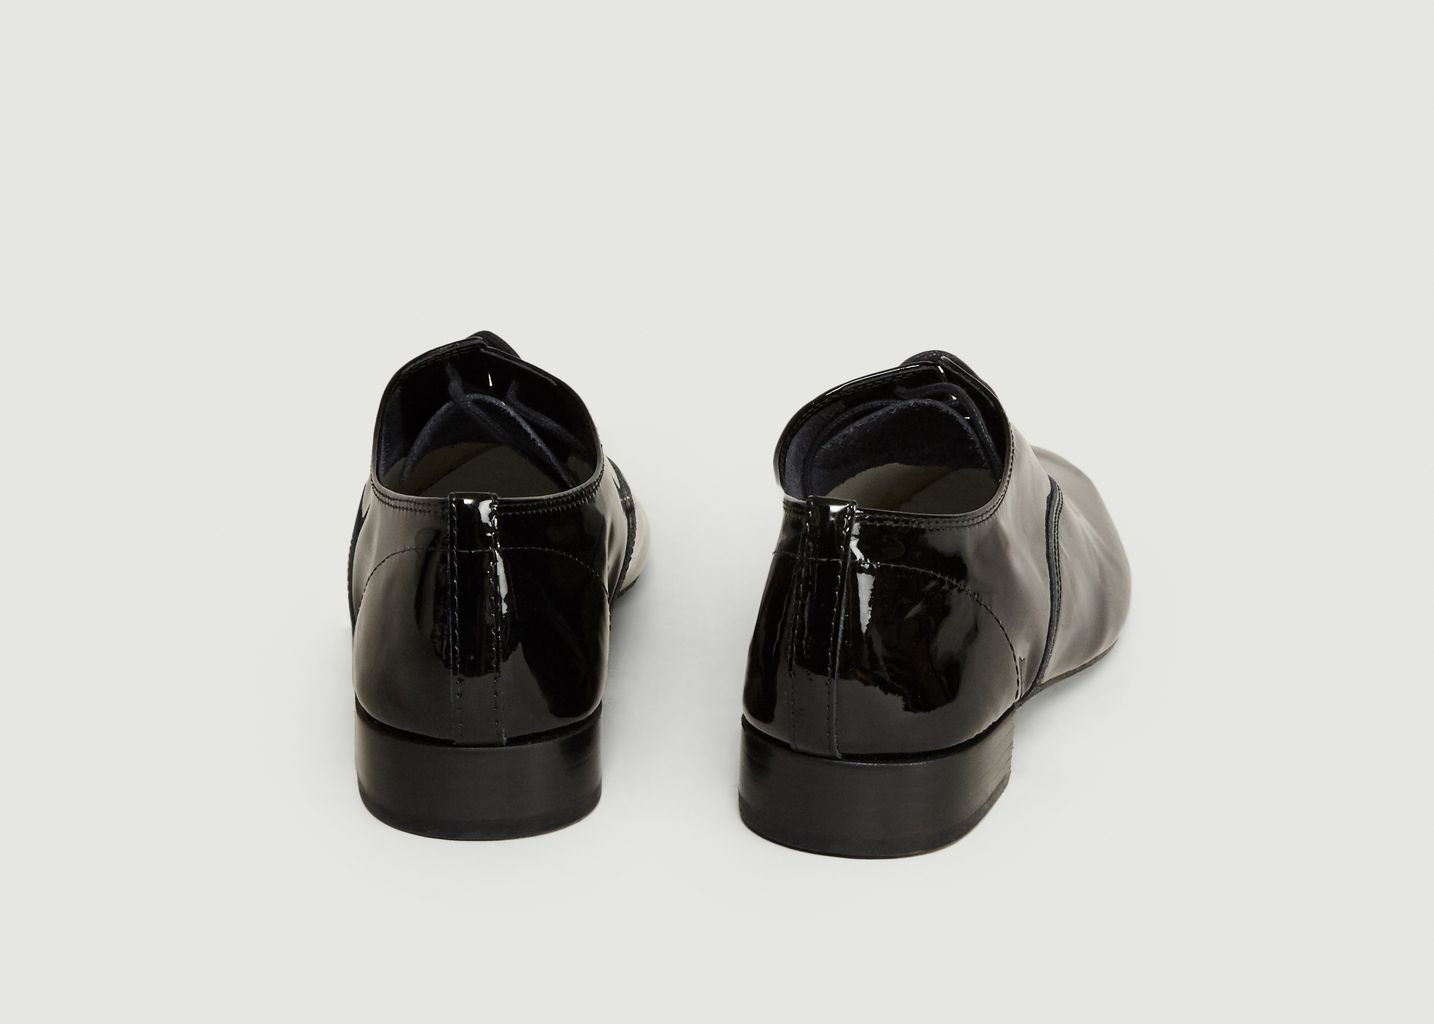 Richelieu Zizi Vernis - Repetto